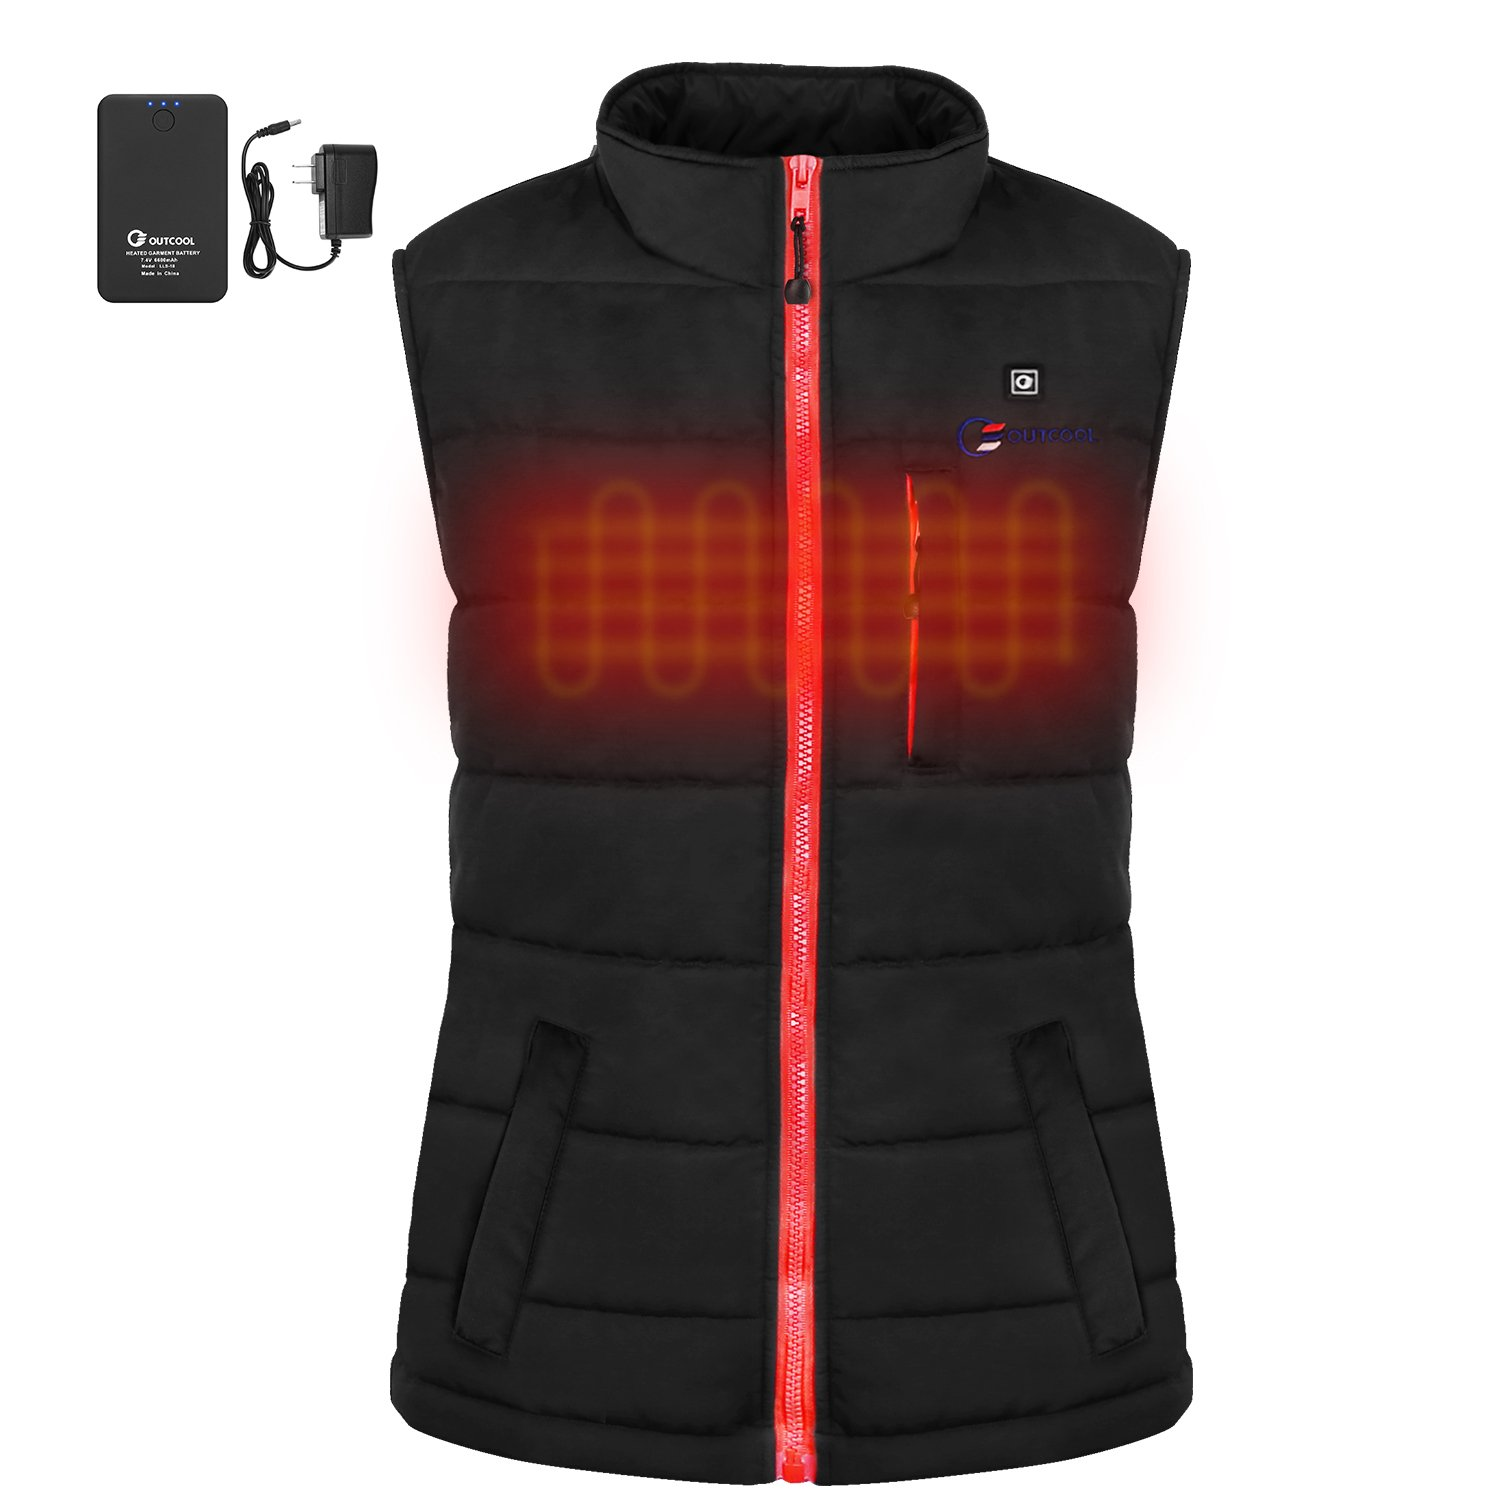 OUTCOOL Women's Slim Fit Heating Winter Vest Lightweight Insulated Heated Waistcoat(L)